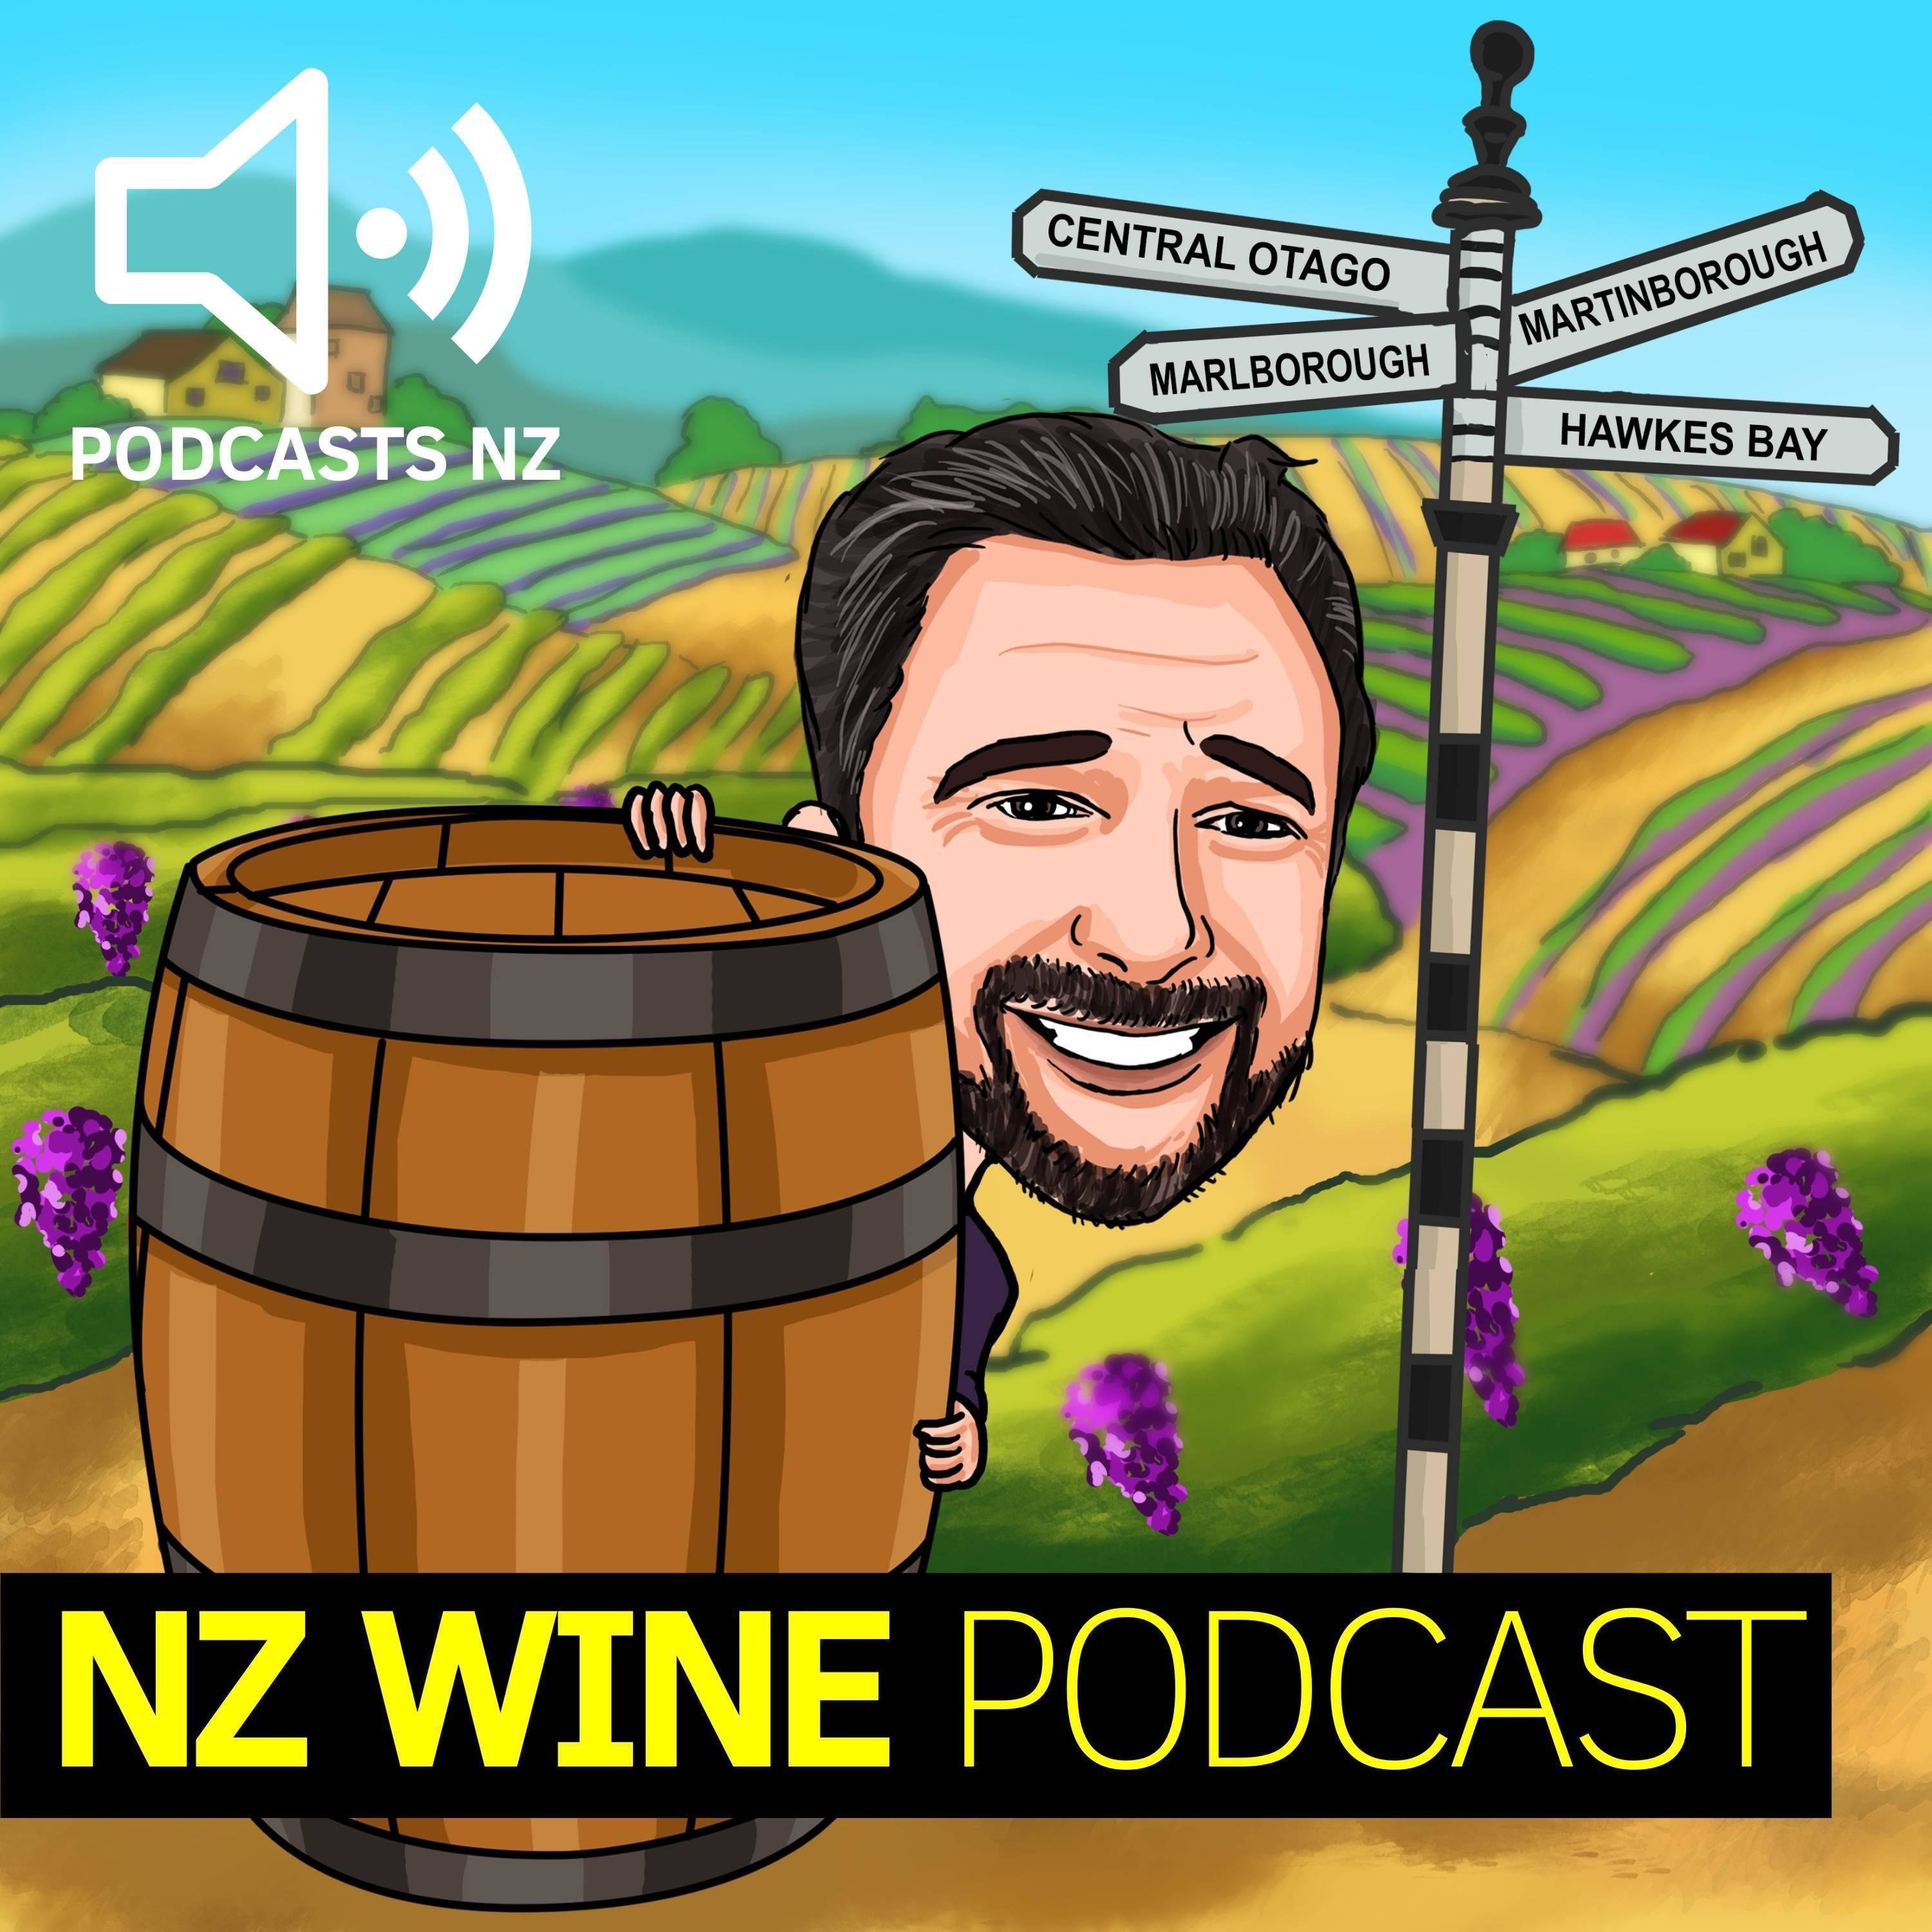 NZ Wine Podcast 47: Tom Trolove - Framingham Wines, Marlborough